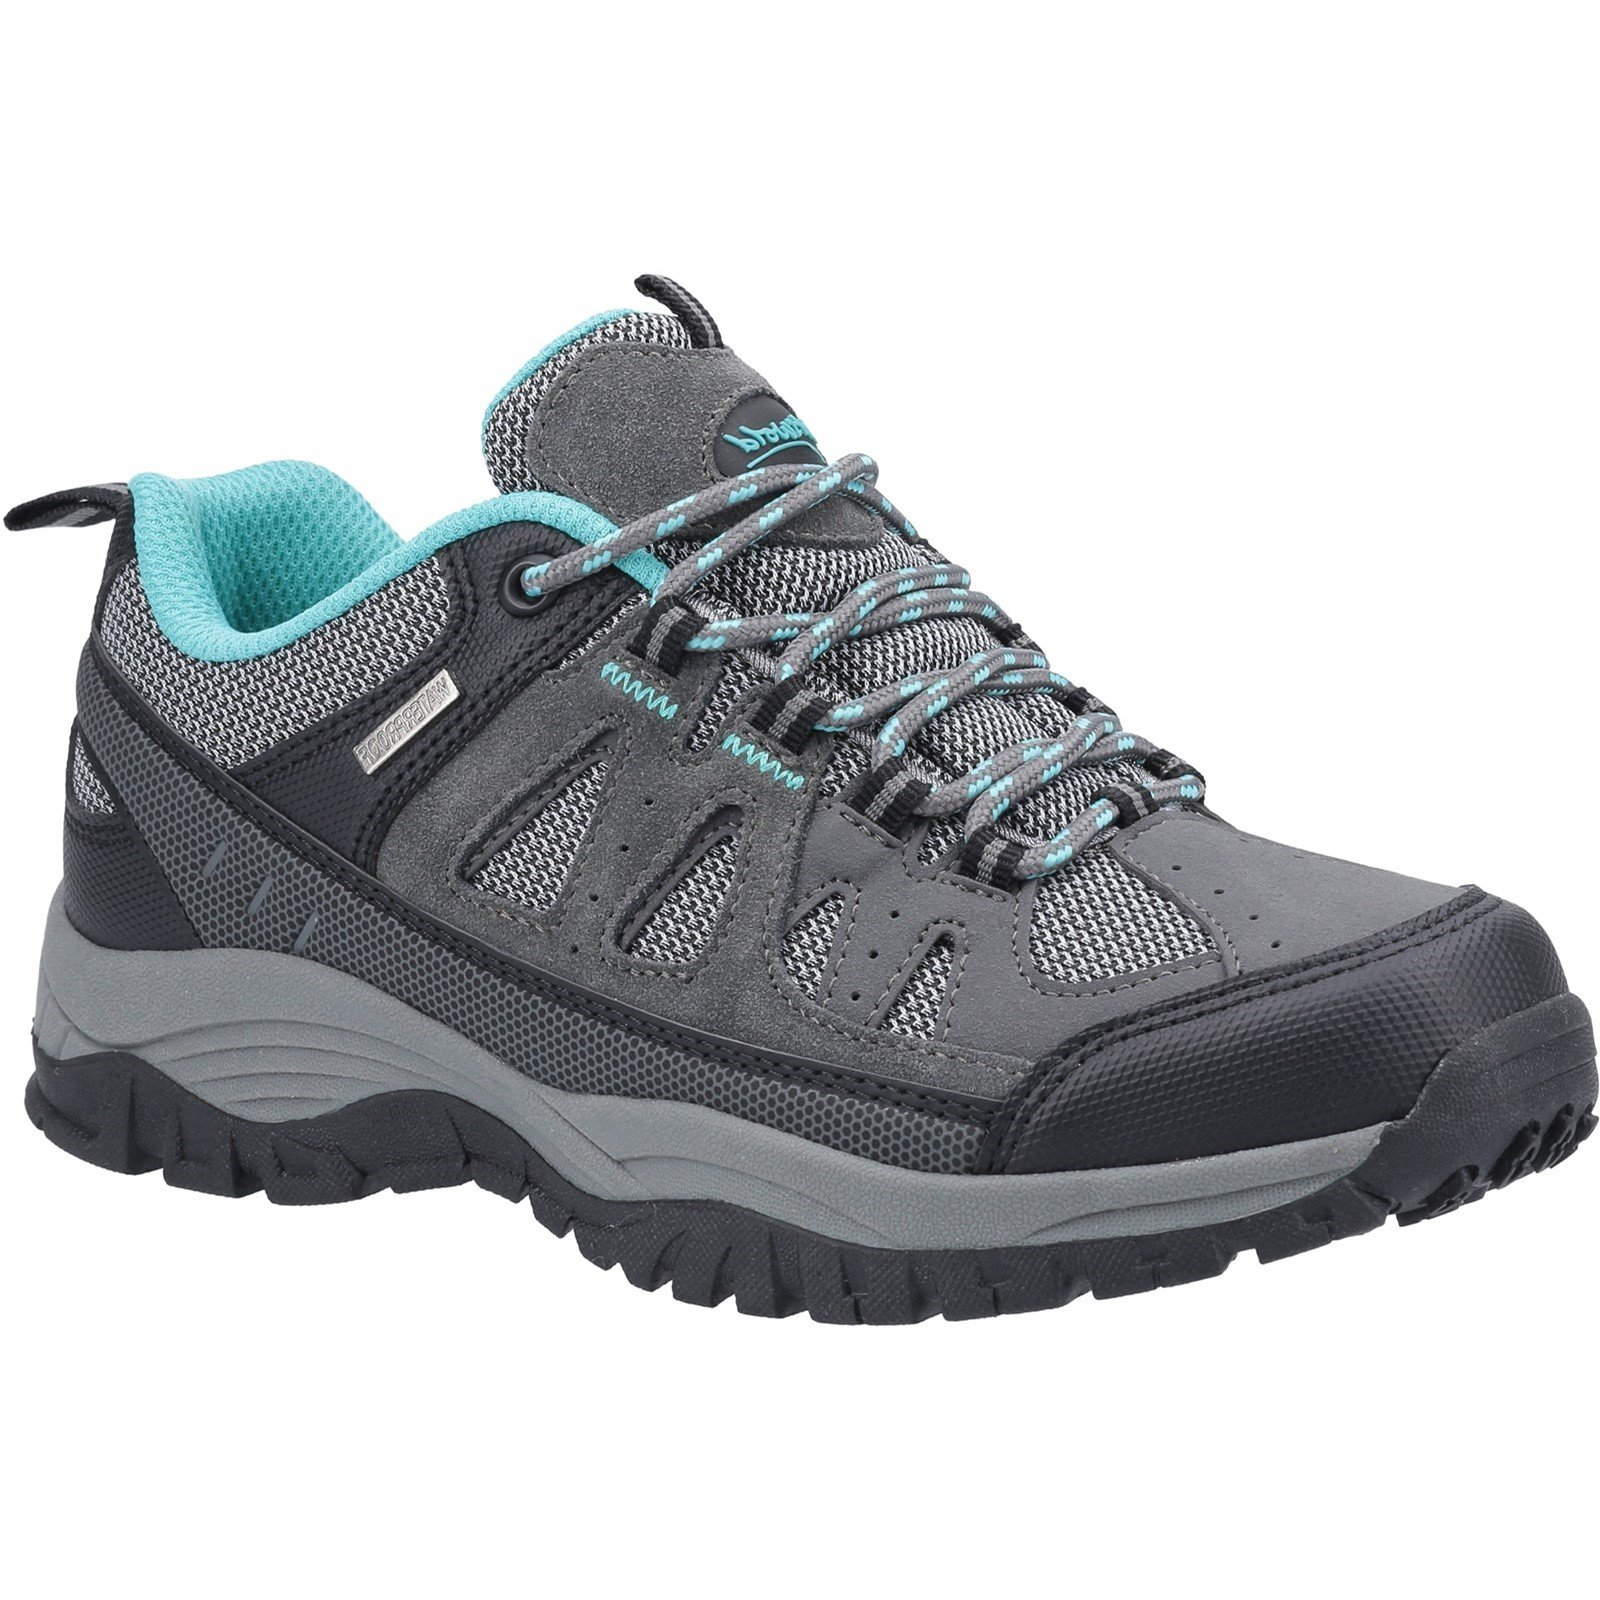 Cotswold Women's Maisemore Low Hiking Boot Grey 32988 - Grey 7